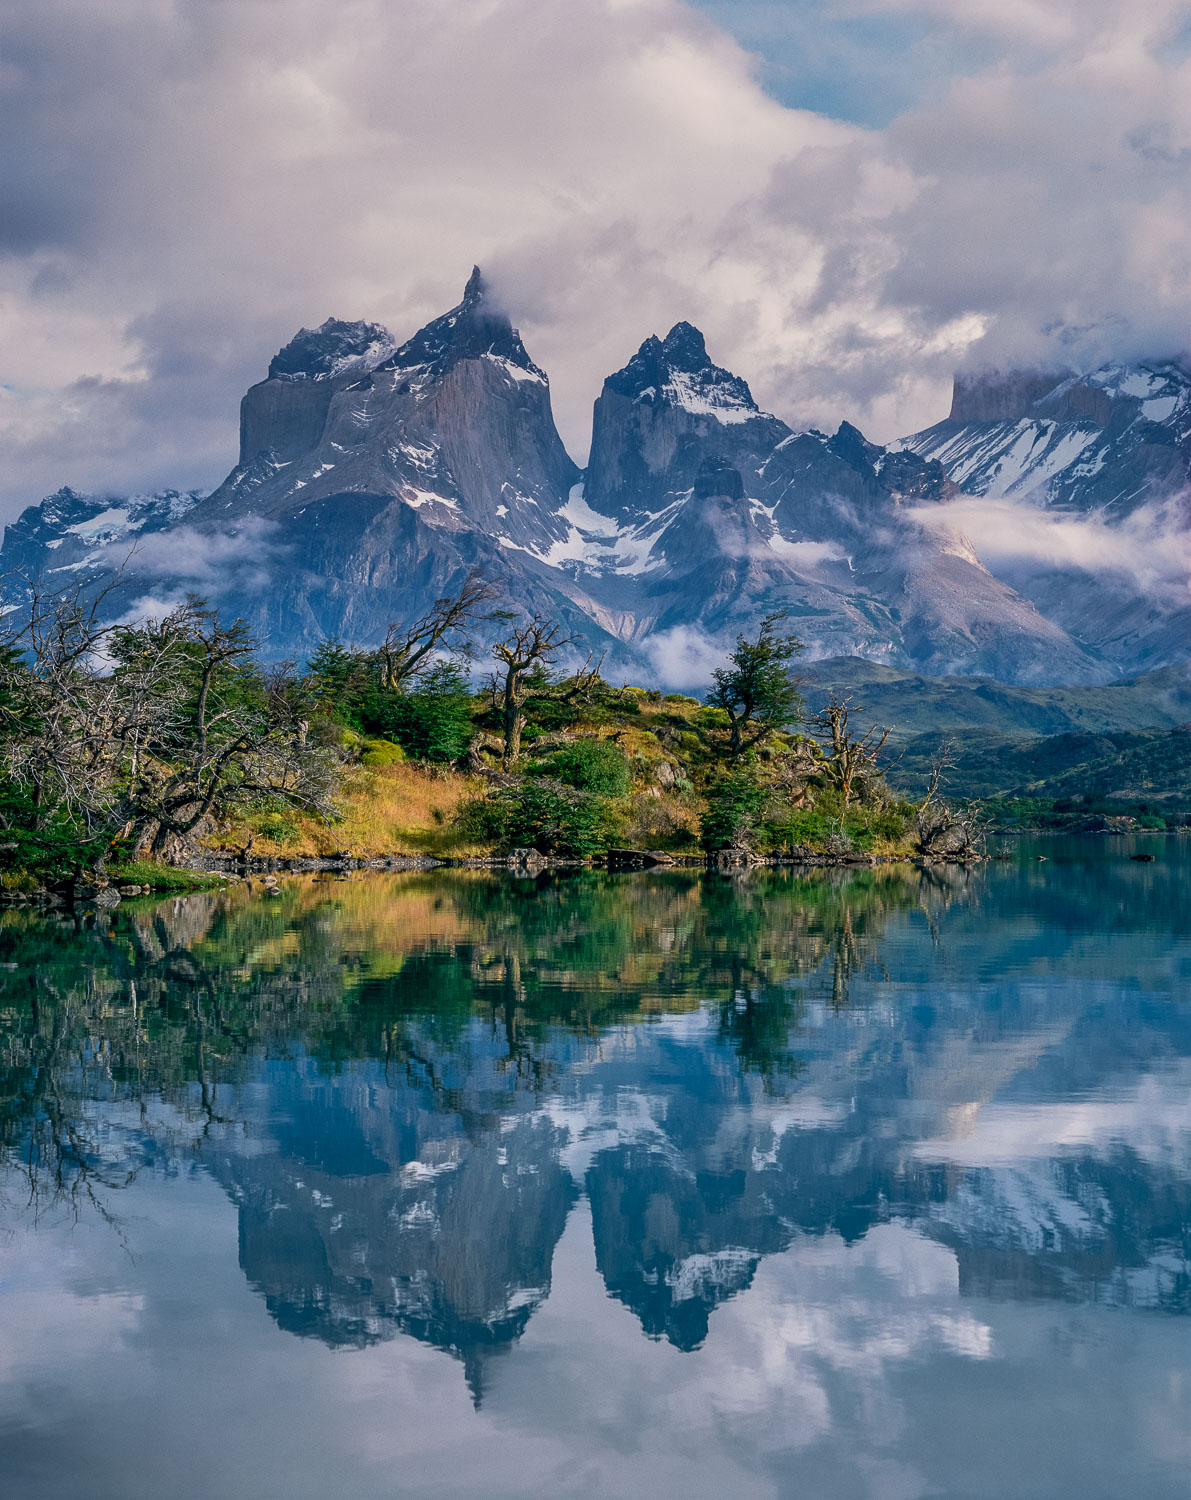 """Paine Mirror"", BBC Award Winning photograph at Torres Del Paine"